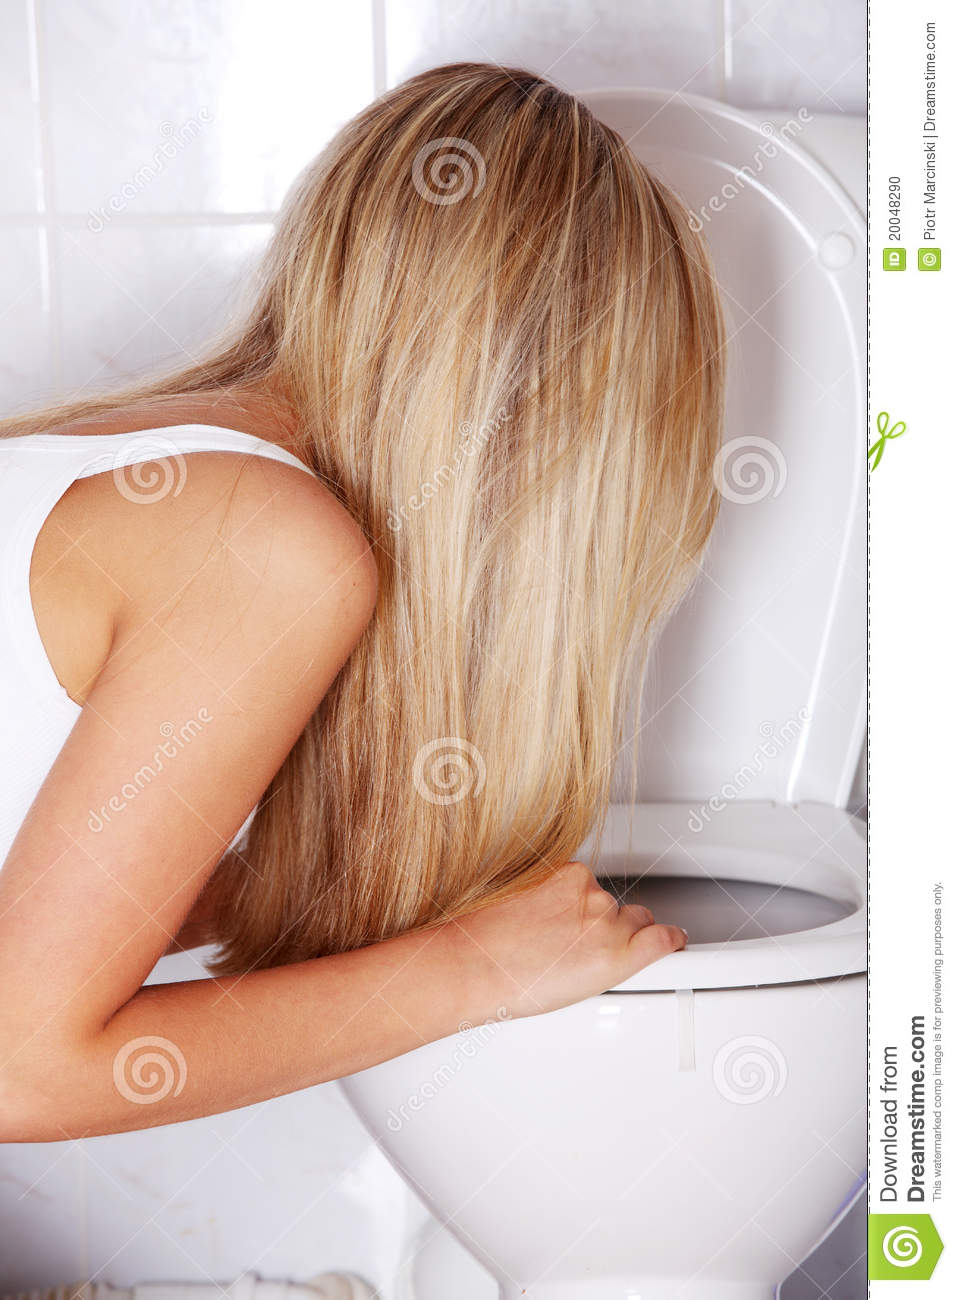 Kitchen Floor Tile Ideas Kitchen Edit as well Toilet With Built In Bidet likewise Bamboo Furniture Bamboo Home Furniture Bamboo Living Furniture as well Stock Photo Young Teen Woman Vomiting Image20048290 together with Stock Photography Barack Obama Hussein Ii Th Current President United States First African American To Hold Office Image34508902. on american bathroom design